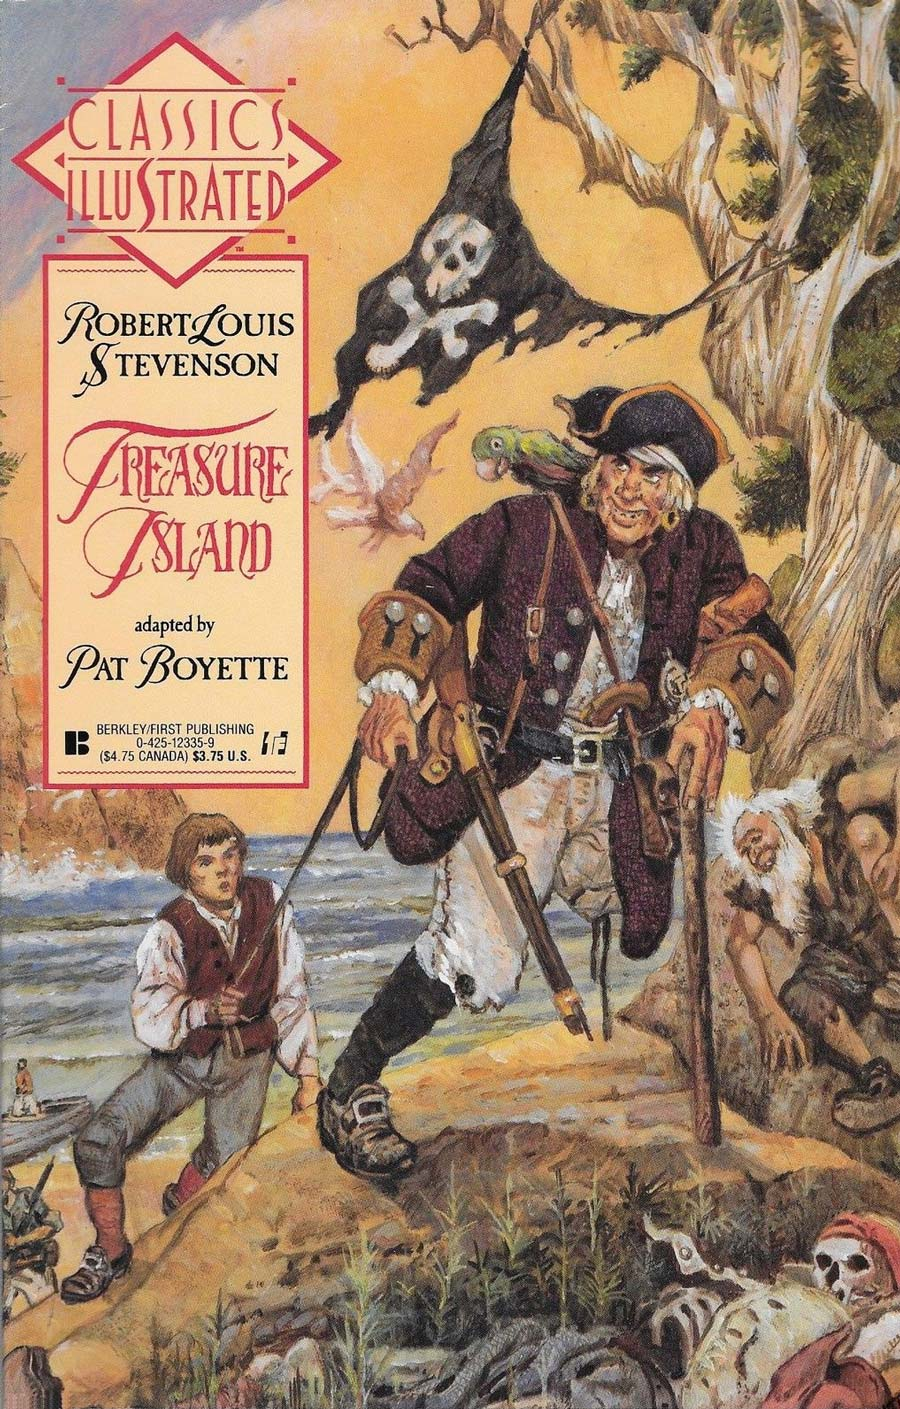 a review of treasure island by robert louis stevenson